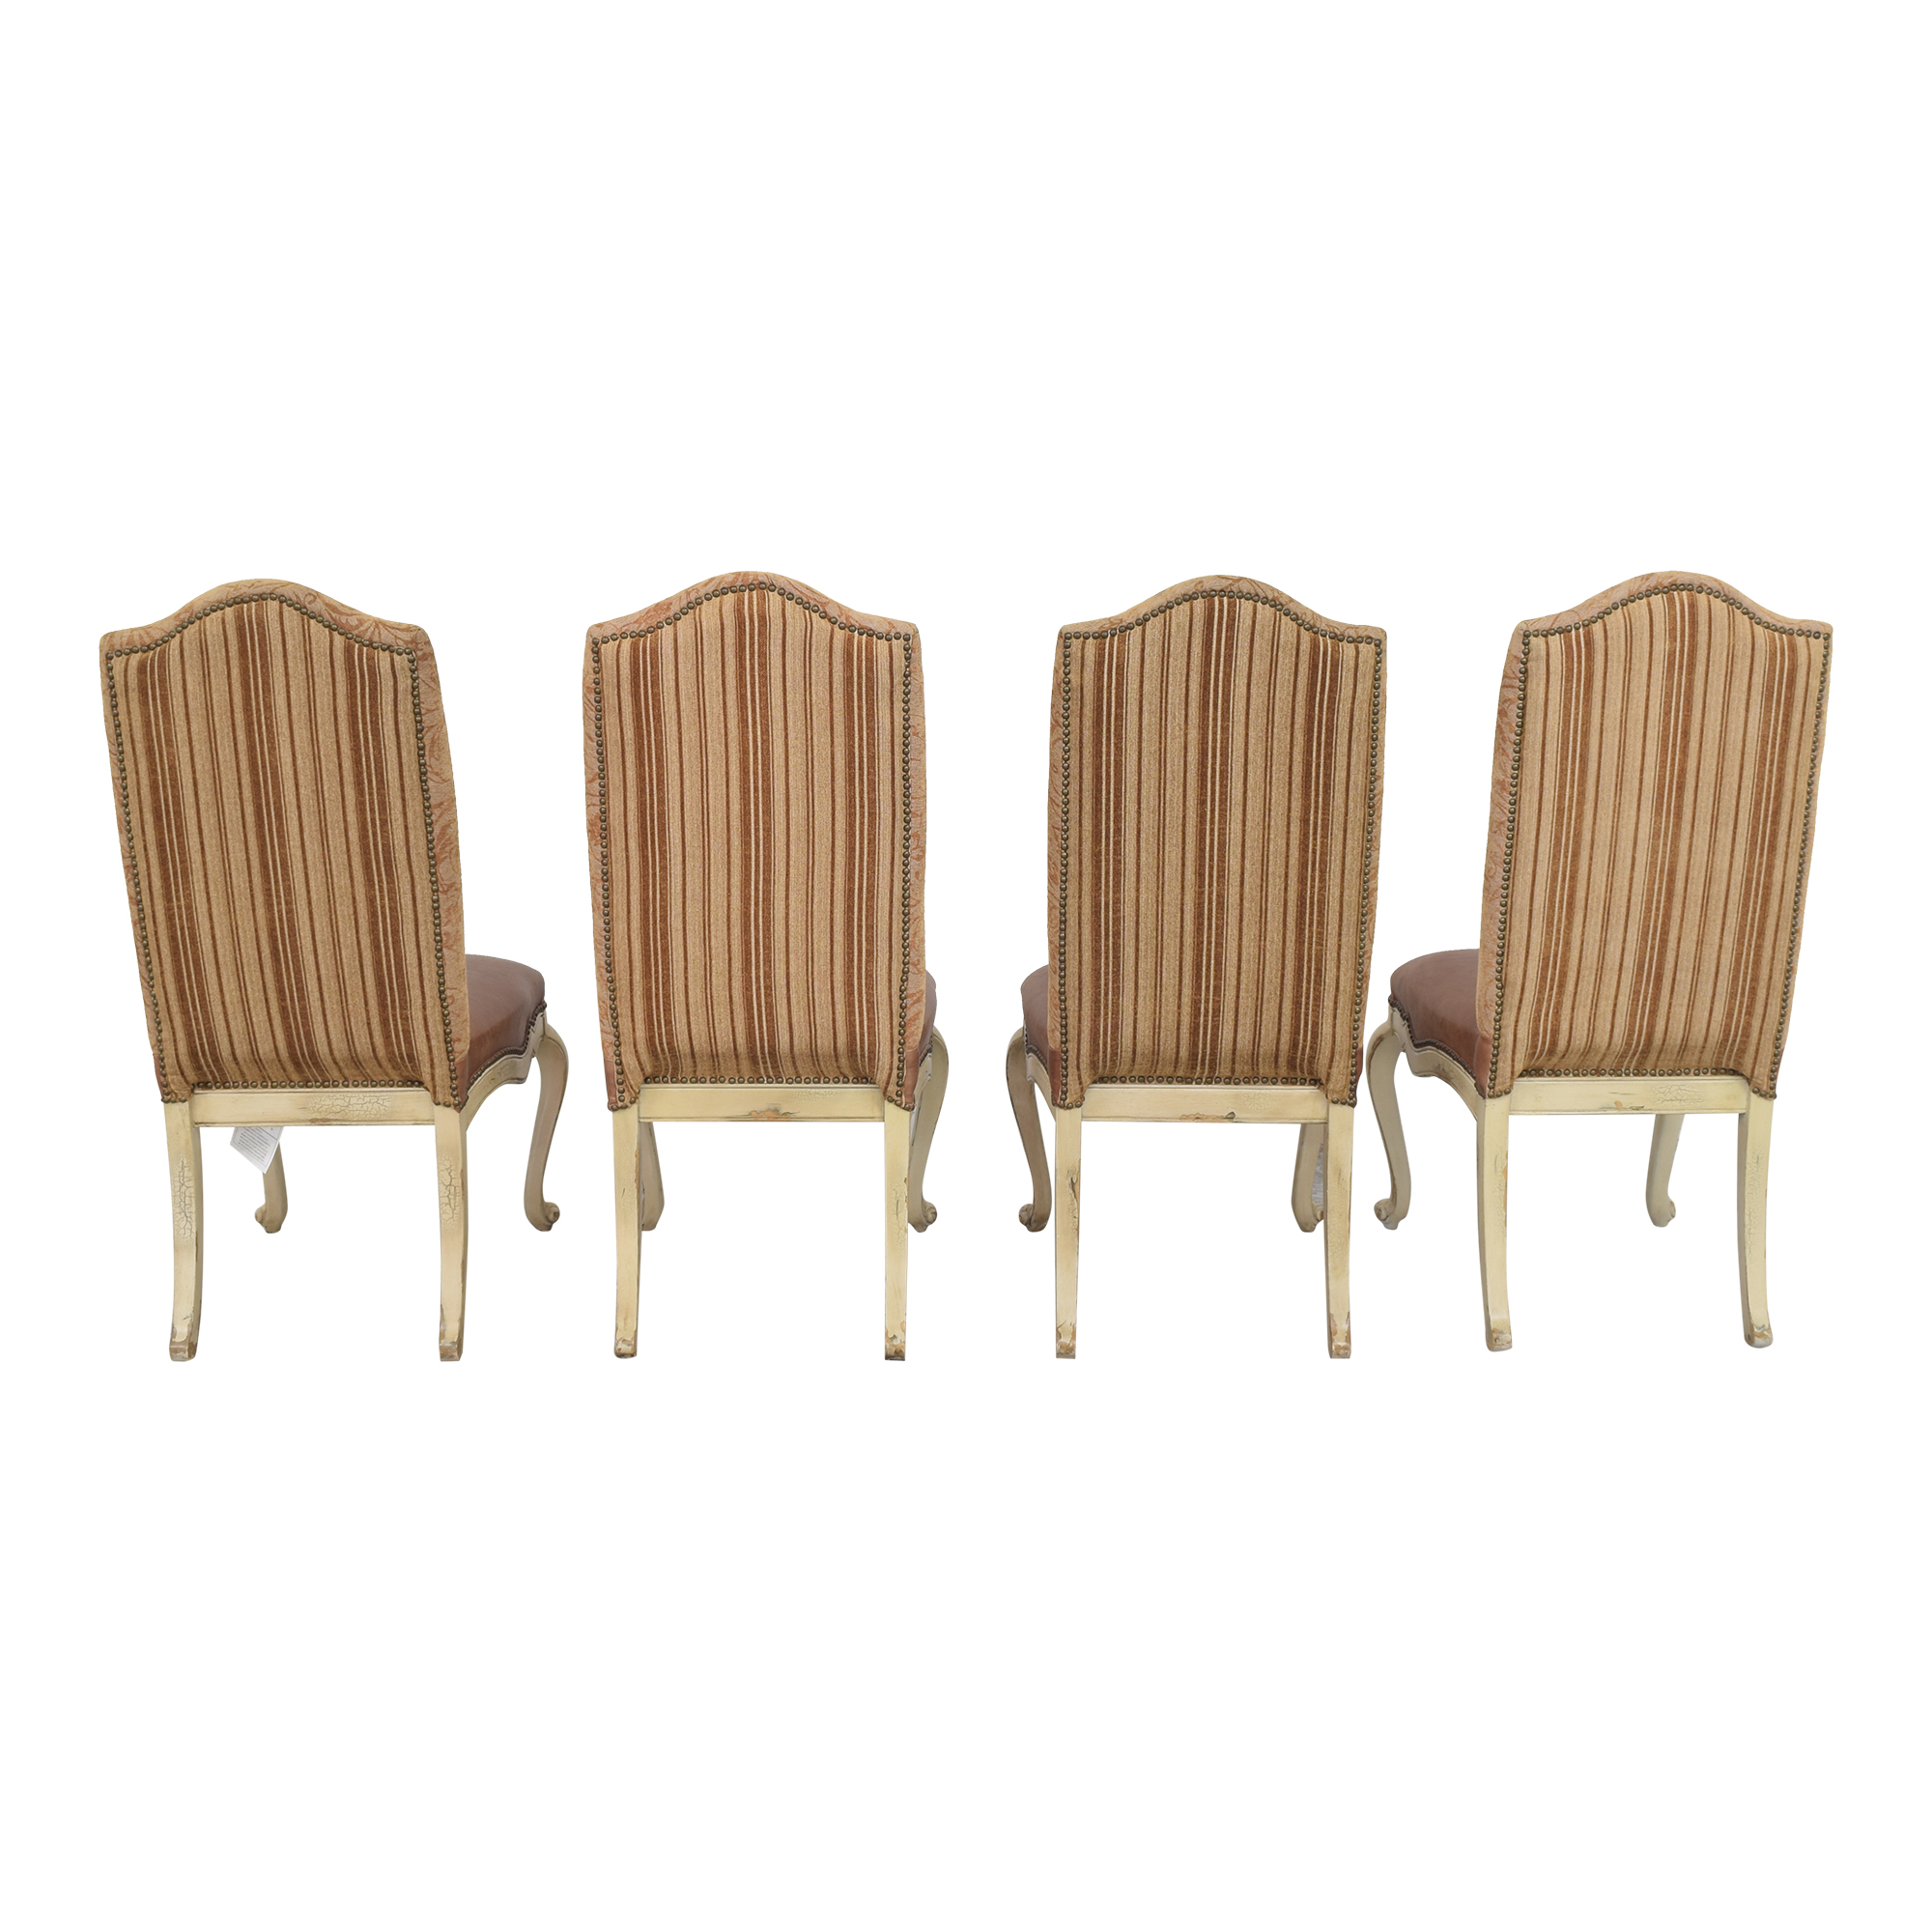 Hooker Furniture Hooker Upholstered Side Chairs brown & off white